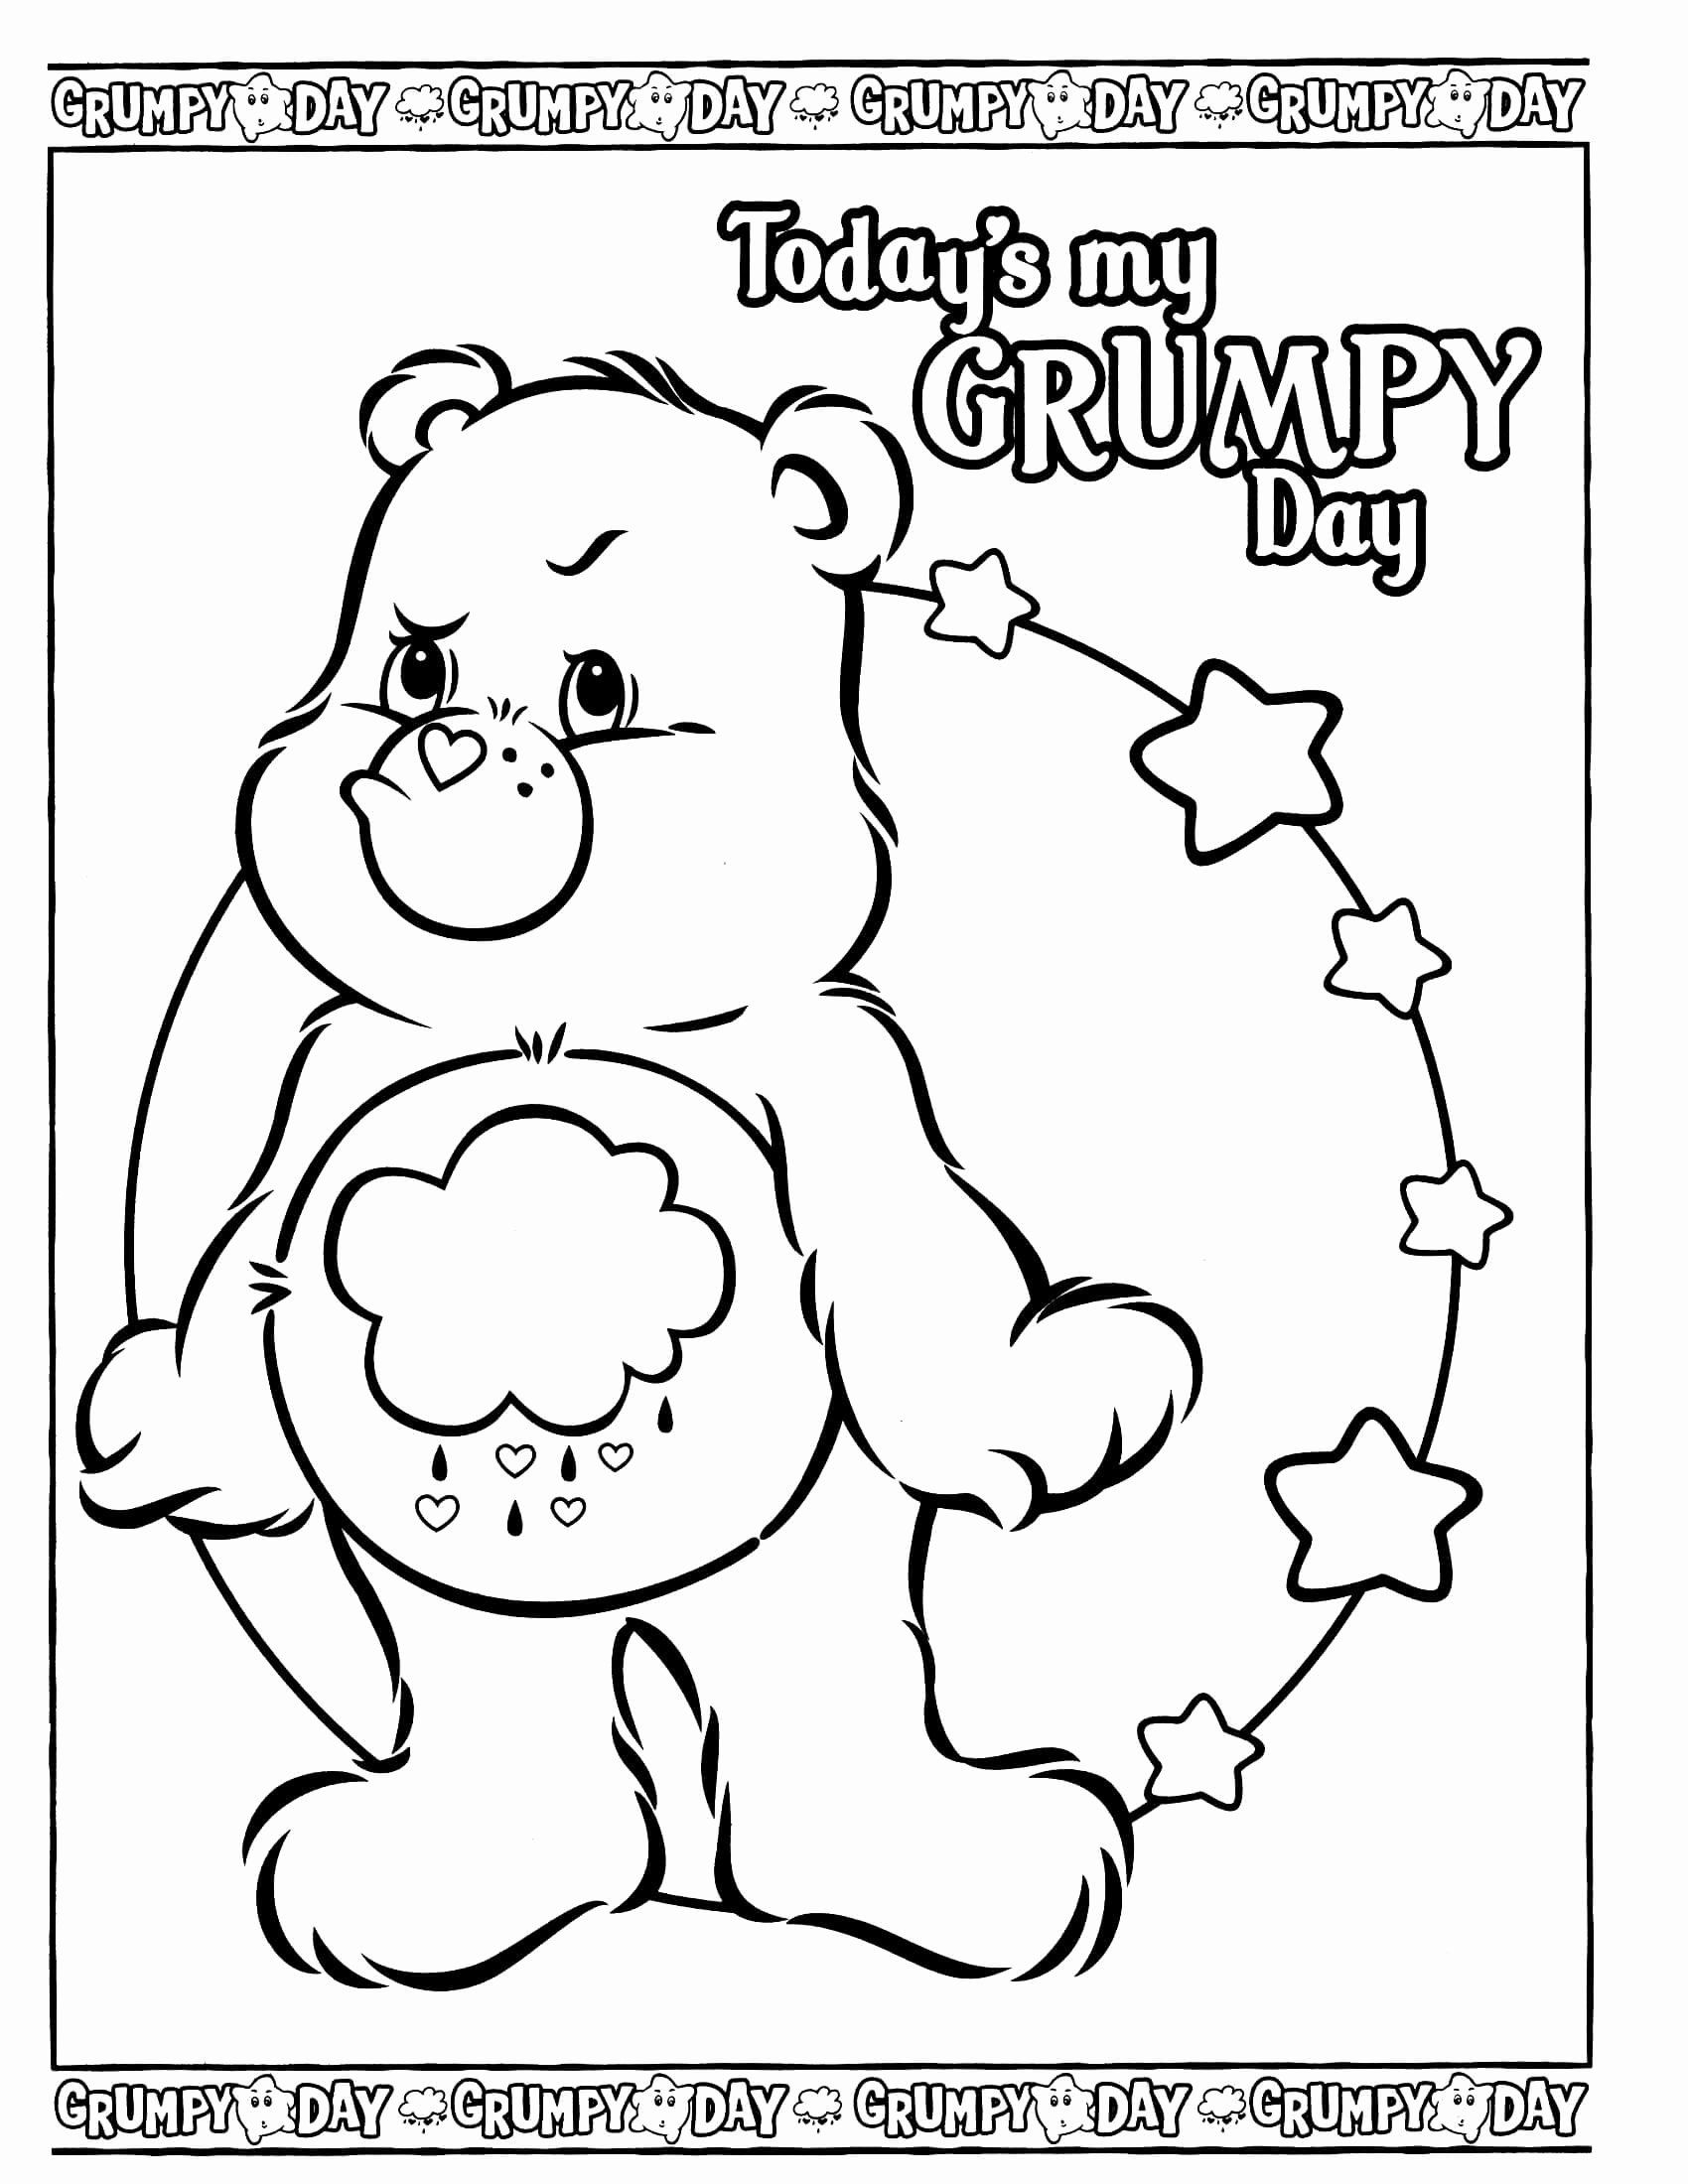 Care Bear Coloring Book Fresh Care Bears Coloring Page Bear Coloring Pages Monkey Coloring Pages Coloring Books